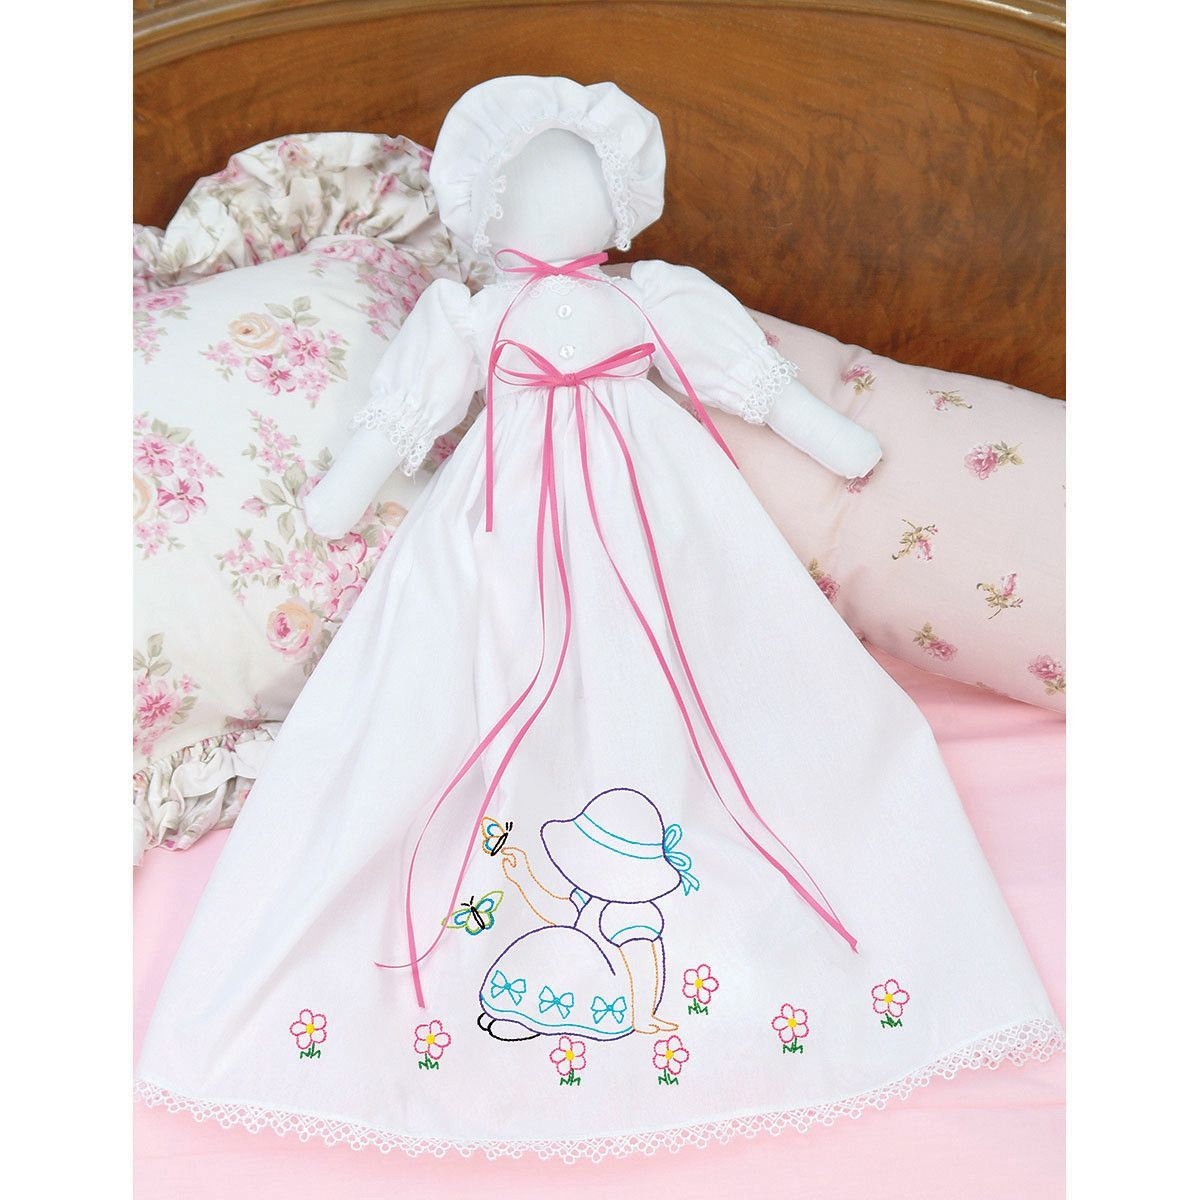 Stamped White Pillowcase Doll Kit-Sunbonnet Sue